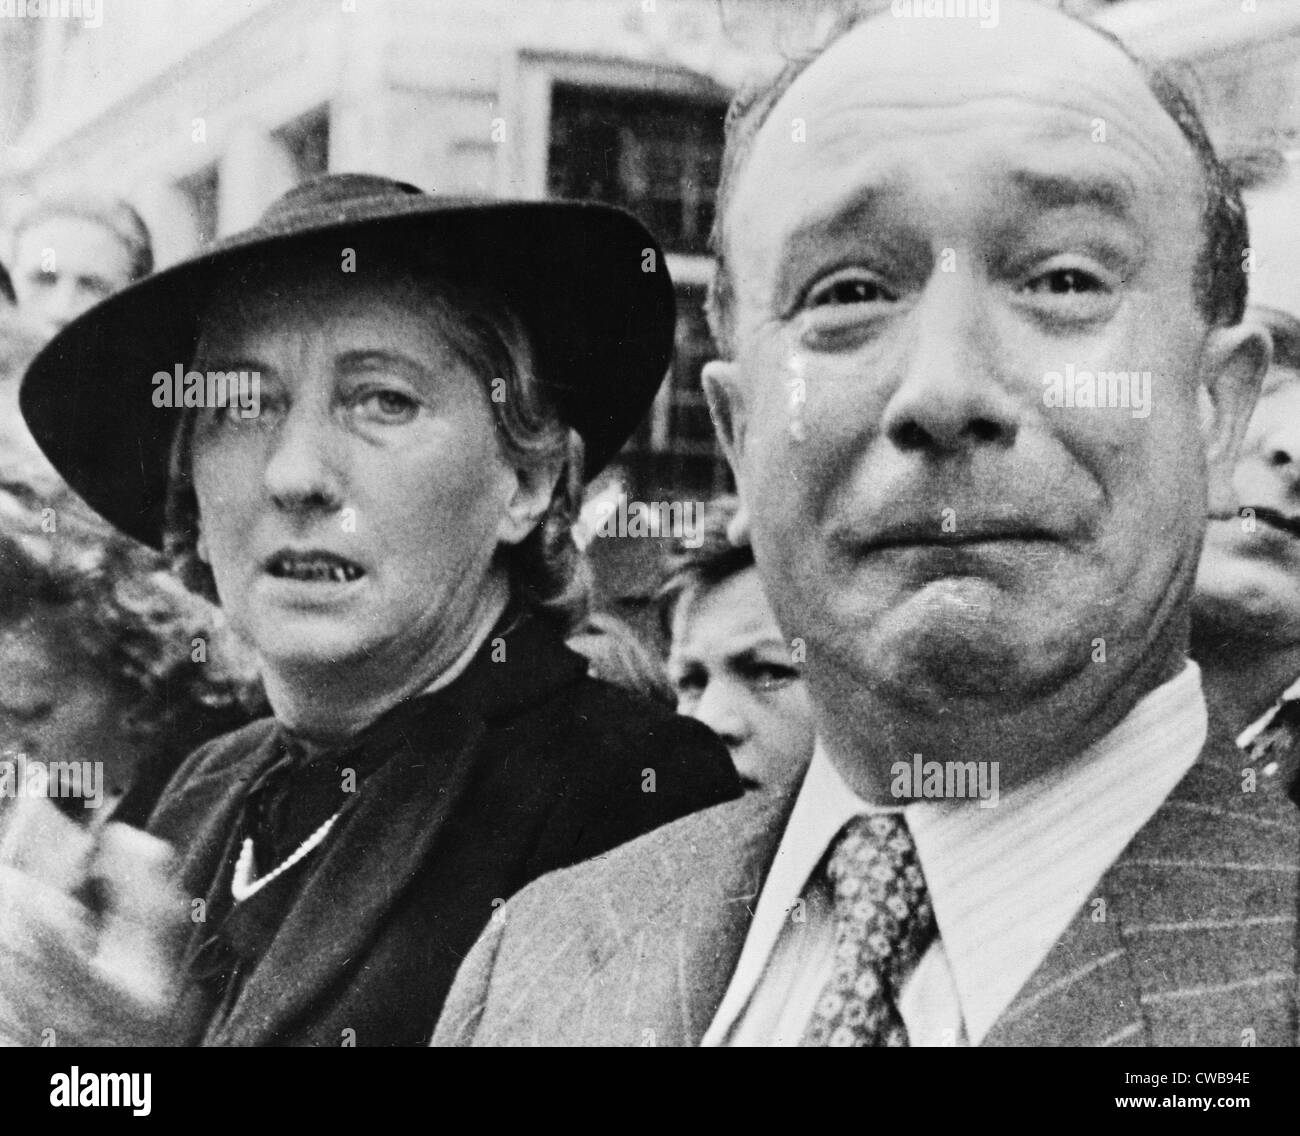 Original caption: 'A Frenchman weeps as German soldiers march into the French capital, Paris, on June 14, 1940, Stock Photo